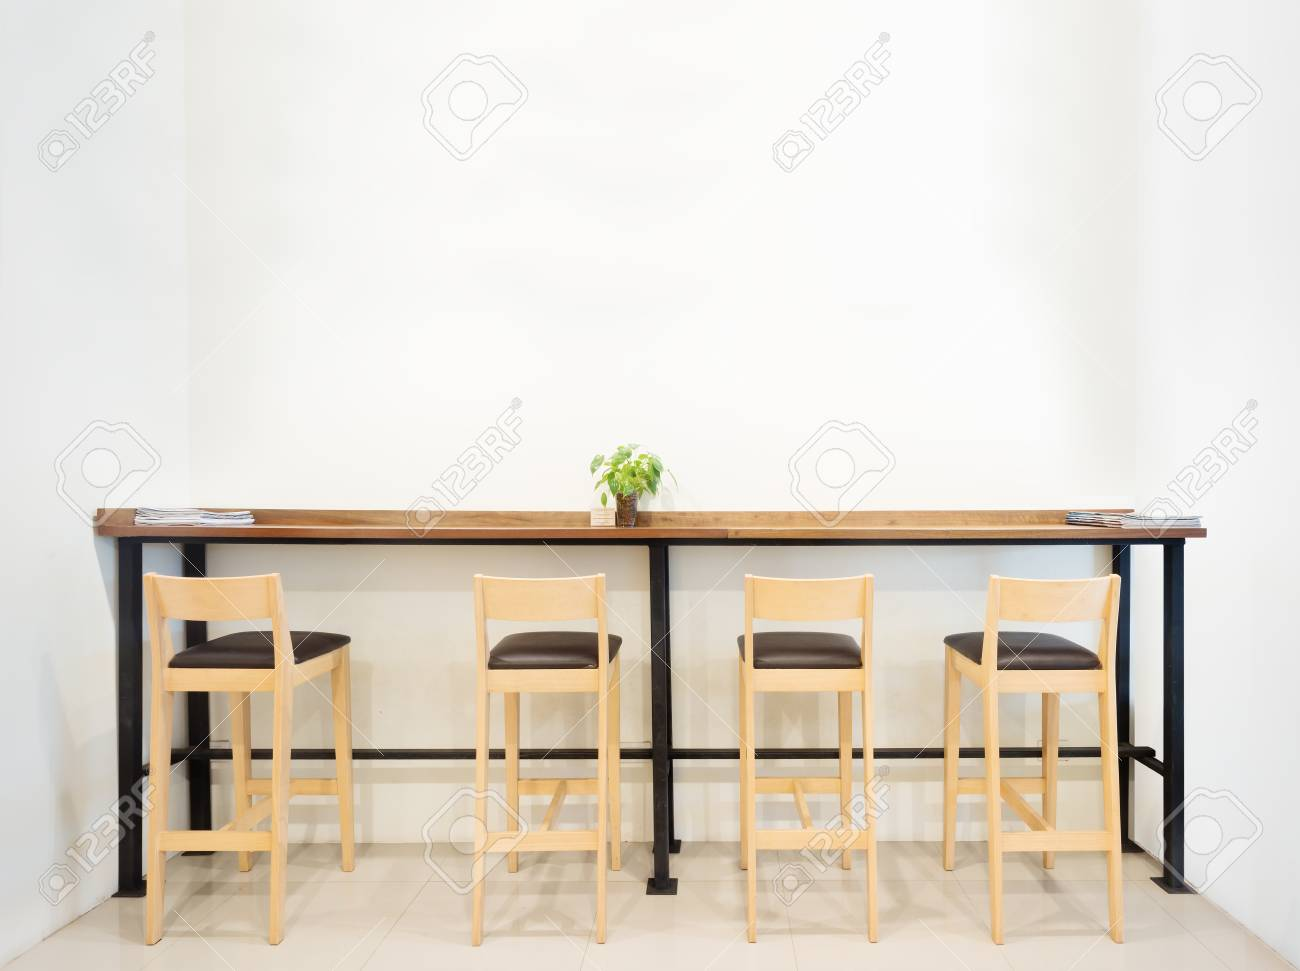 Counter In Cafe Bar With White Wall Empty Space Stock Photo Picture And Royalty Free Image Image 66304801